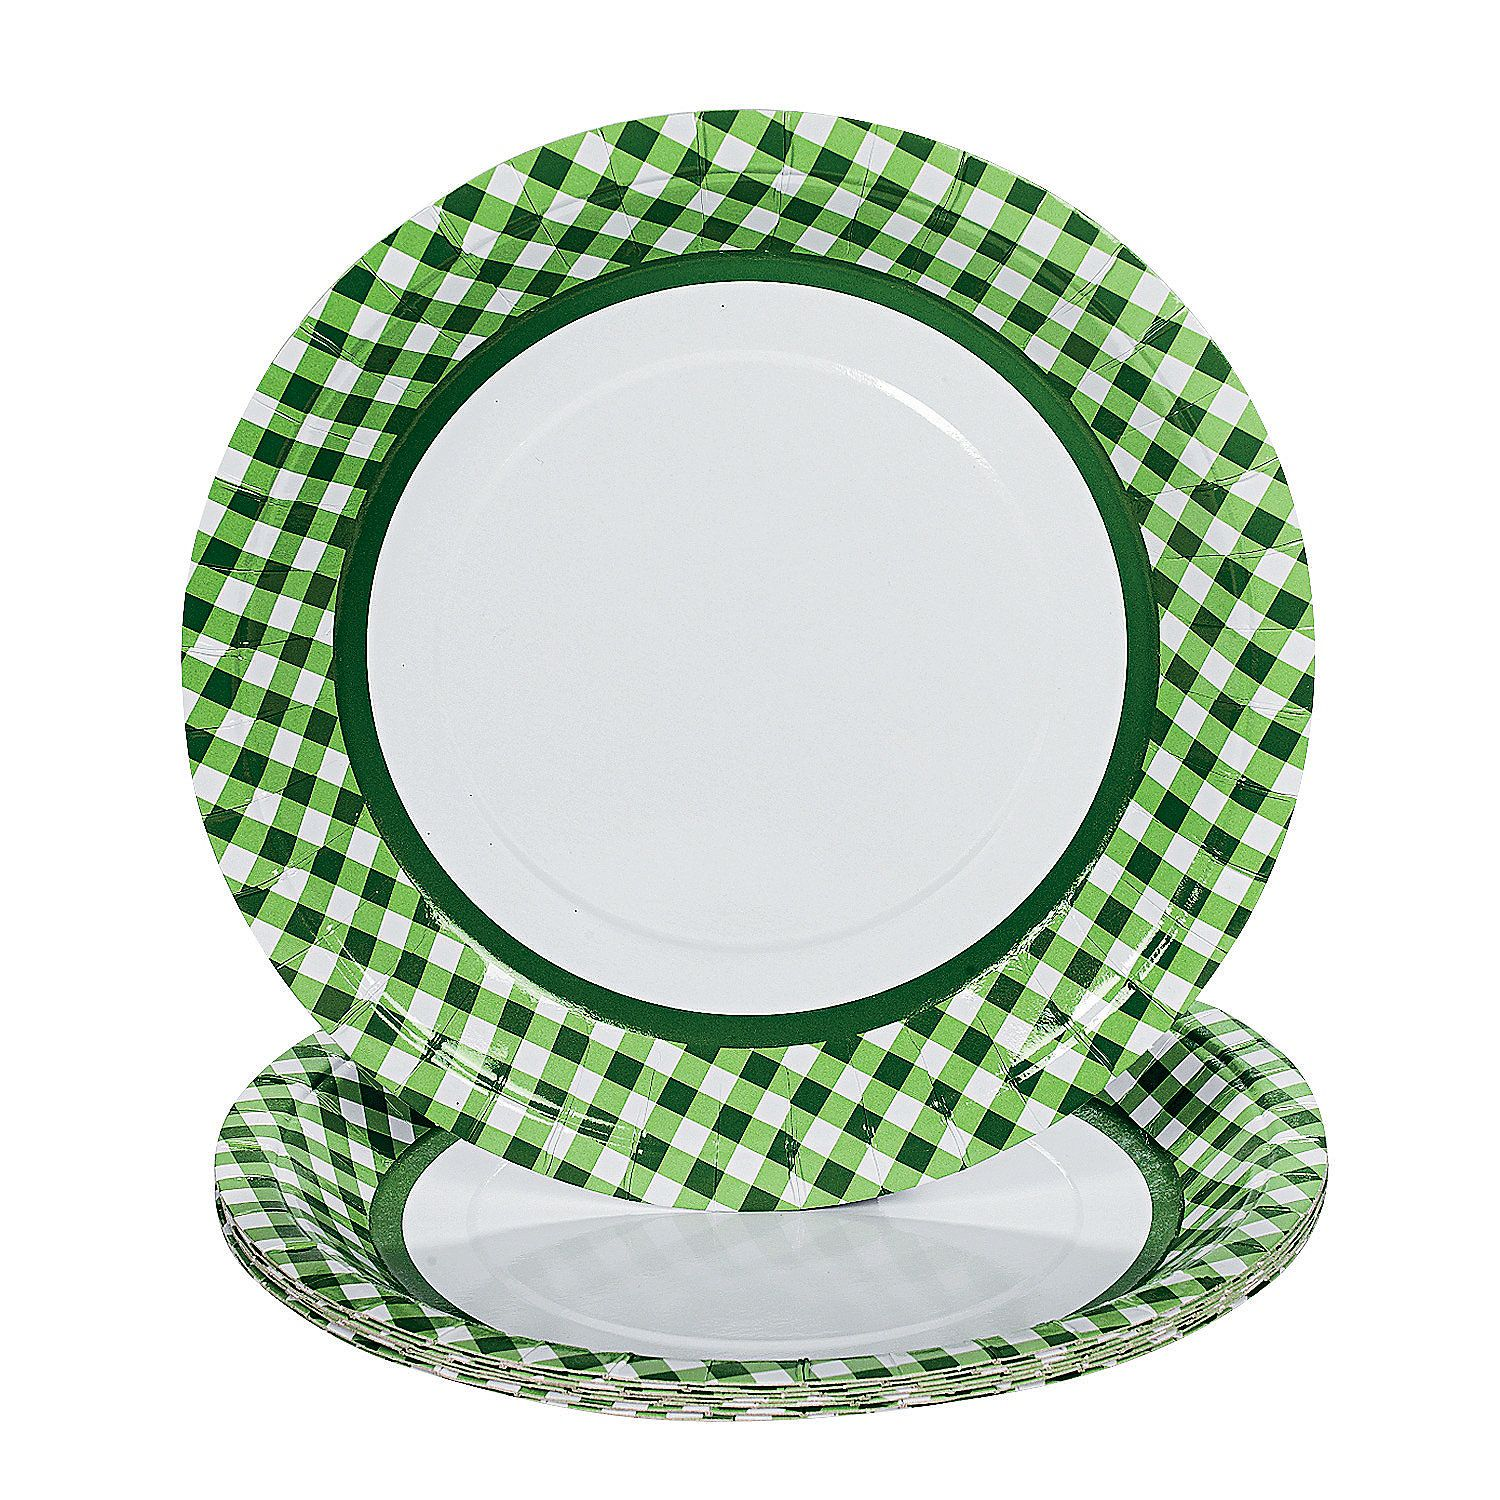 Green Gingham Paper Dinner Plates  sc 1 st  Pinterest & Green Gingham Paper Dinner Plates | Gingham Dinners and Italian party